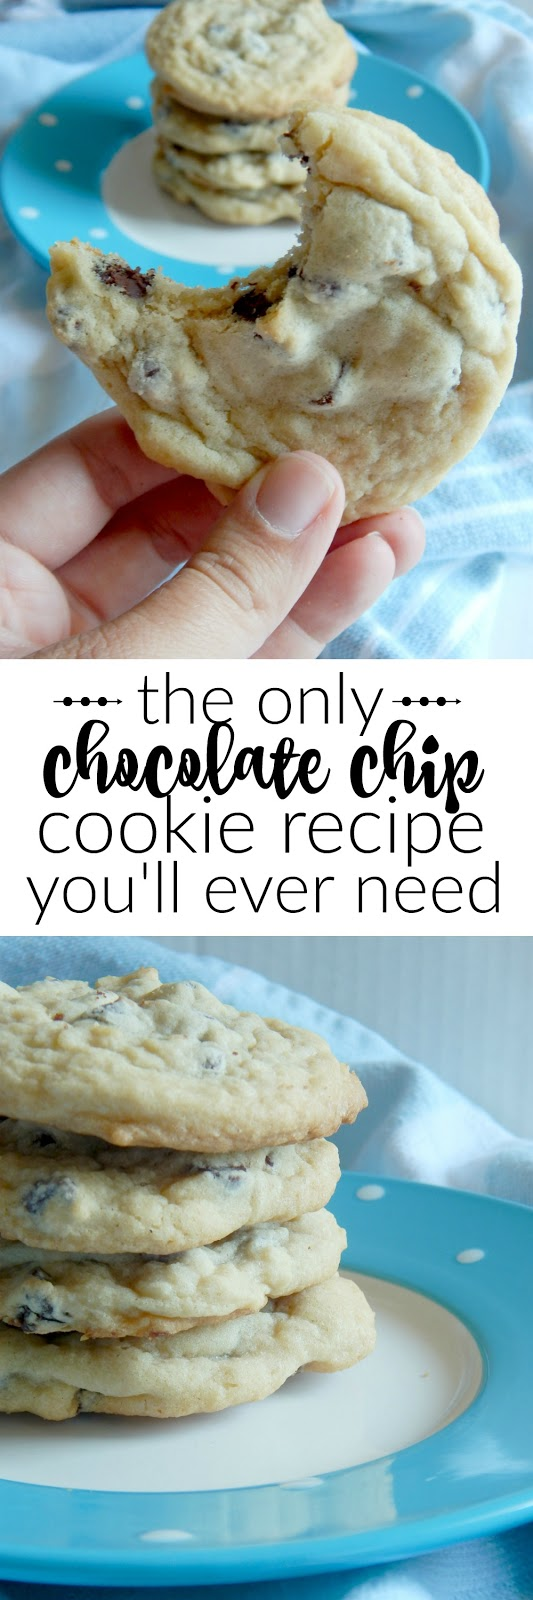 chocolate chip cookie recipe (sweetandsavoryfood.com)